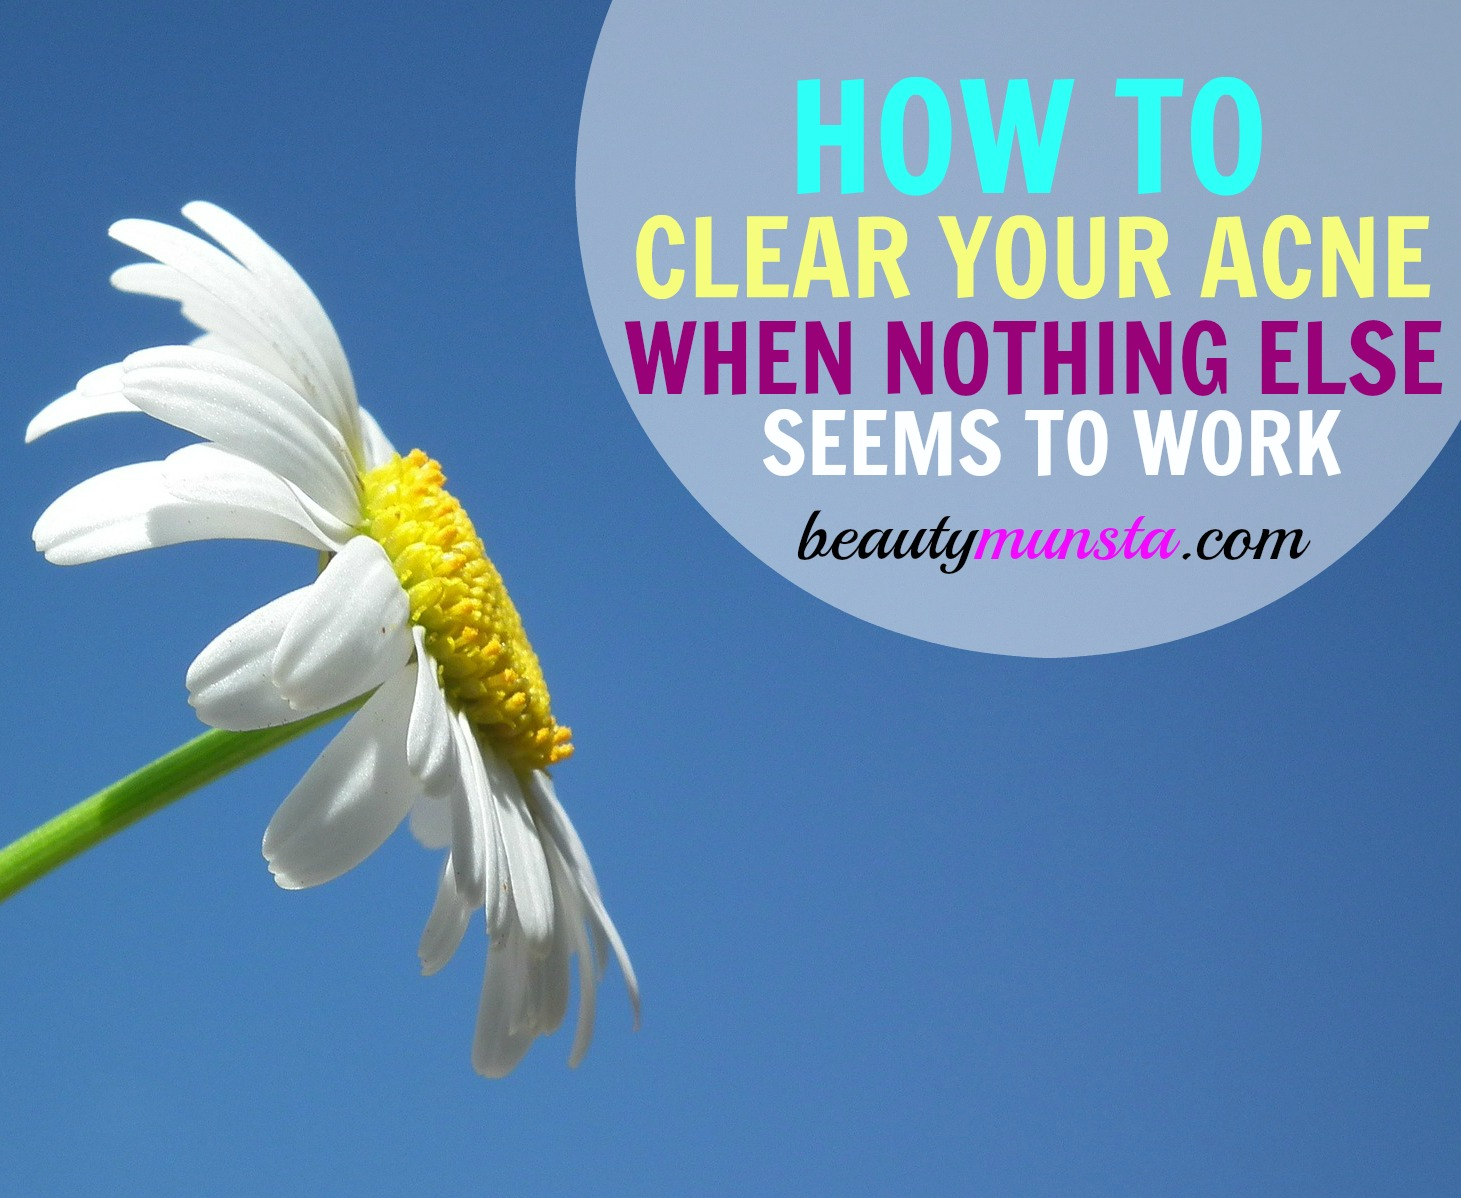 What is the real cause of your acne? Can I heal my acne with the power of my mind? Find out in the post below!